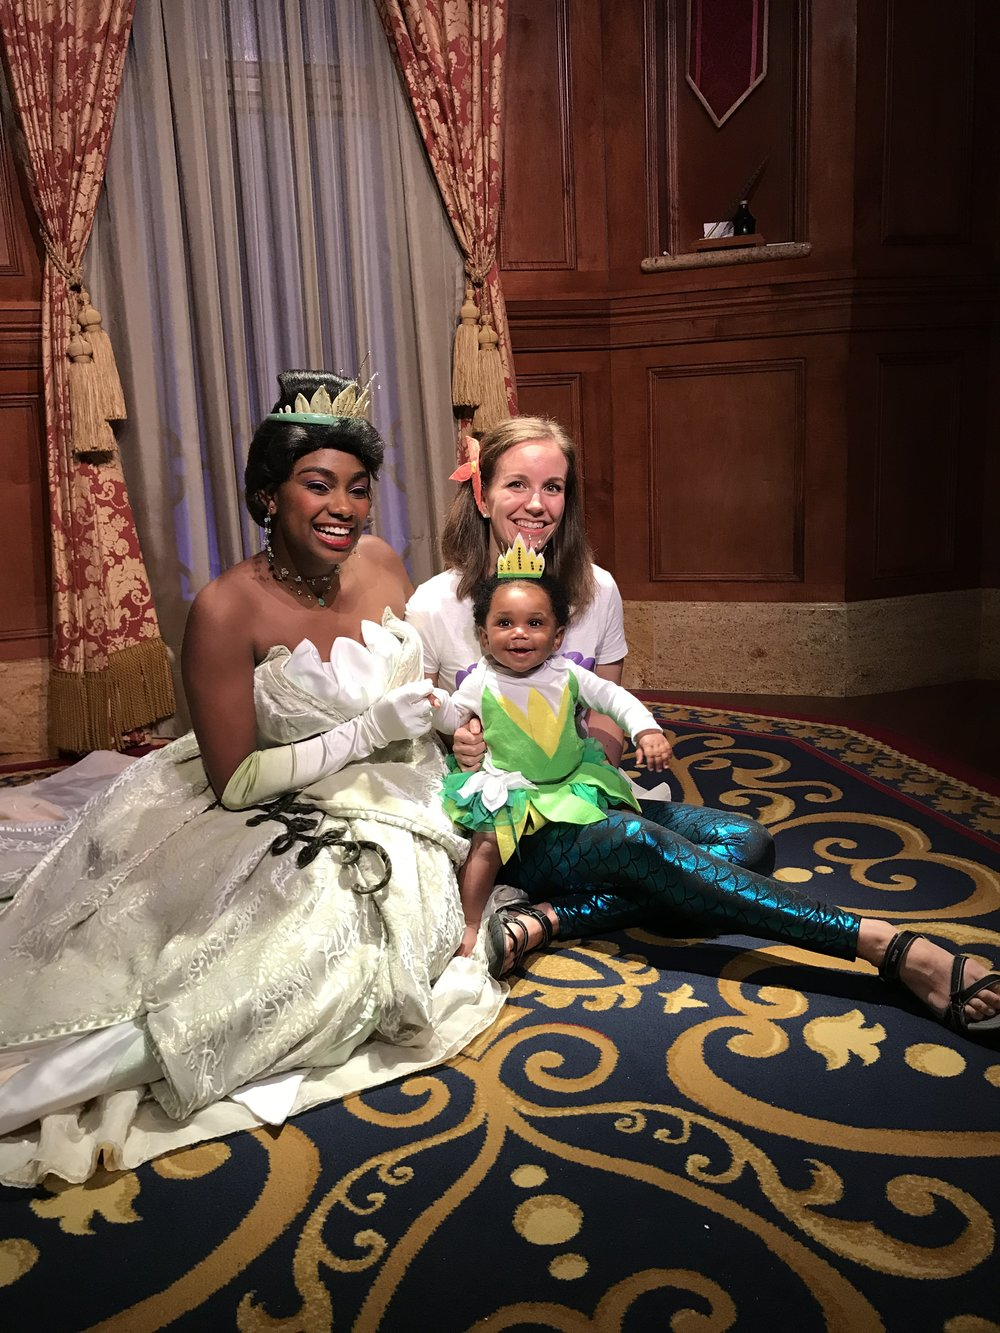 Visiting Princess Tiana at Disney World